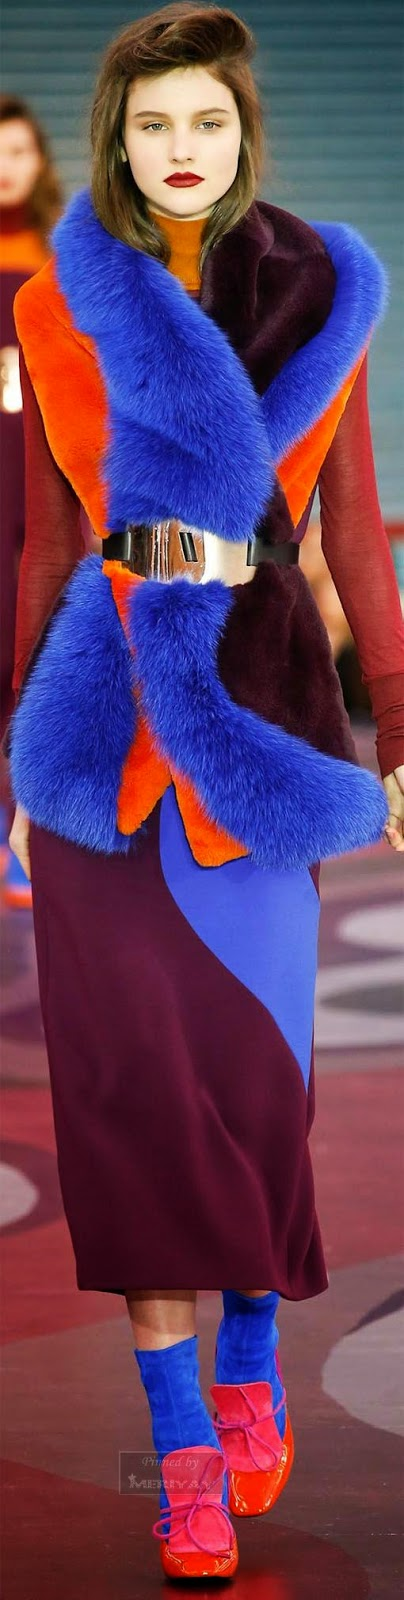 Beautiful blue and orange furry dress